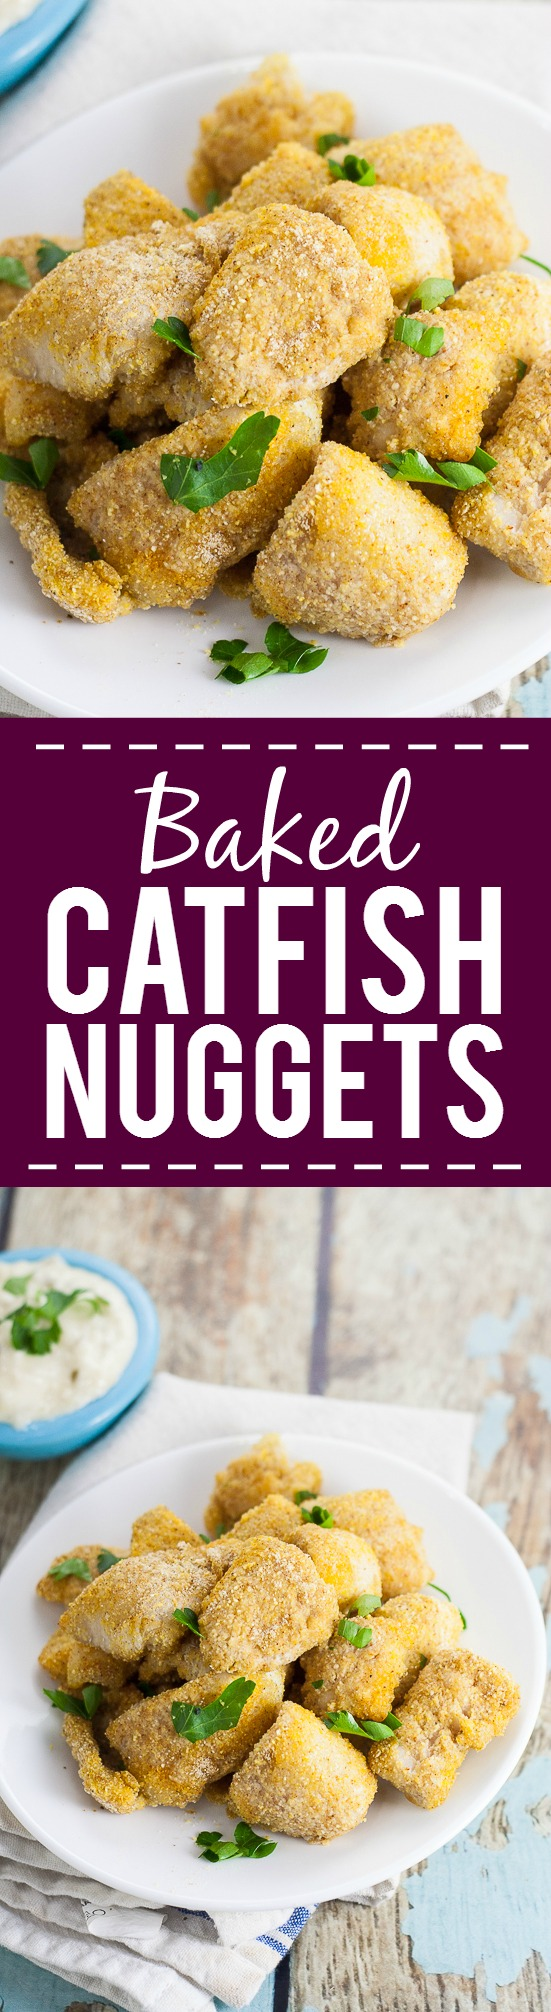 Baked Catfish Nuggets Recipe - Make these healthy, quick, and easy Baked Catfish Nuggets in just 30 minutes with 5 ingredients. Breaded with cornmeal and Cajun seasoning for a kick. Serve with your favorite sauce! So good! And such a quick and easy seafood recipe.